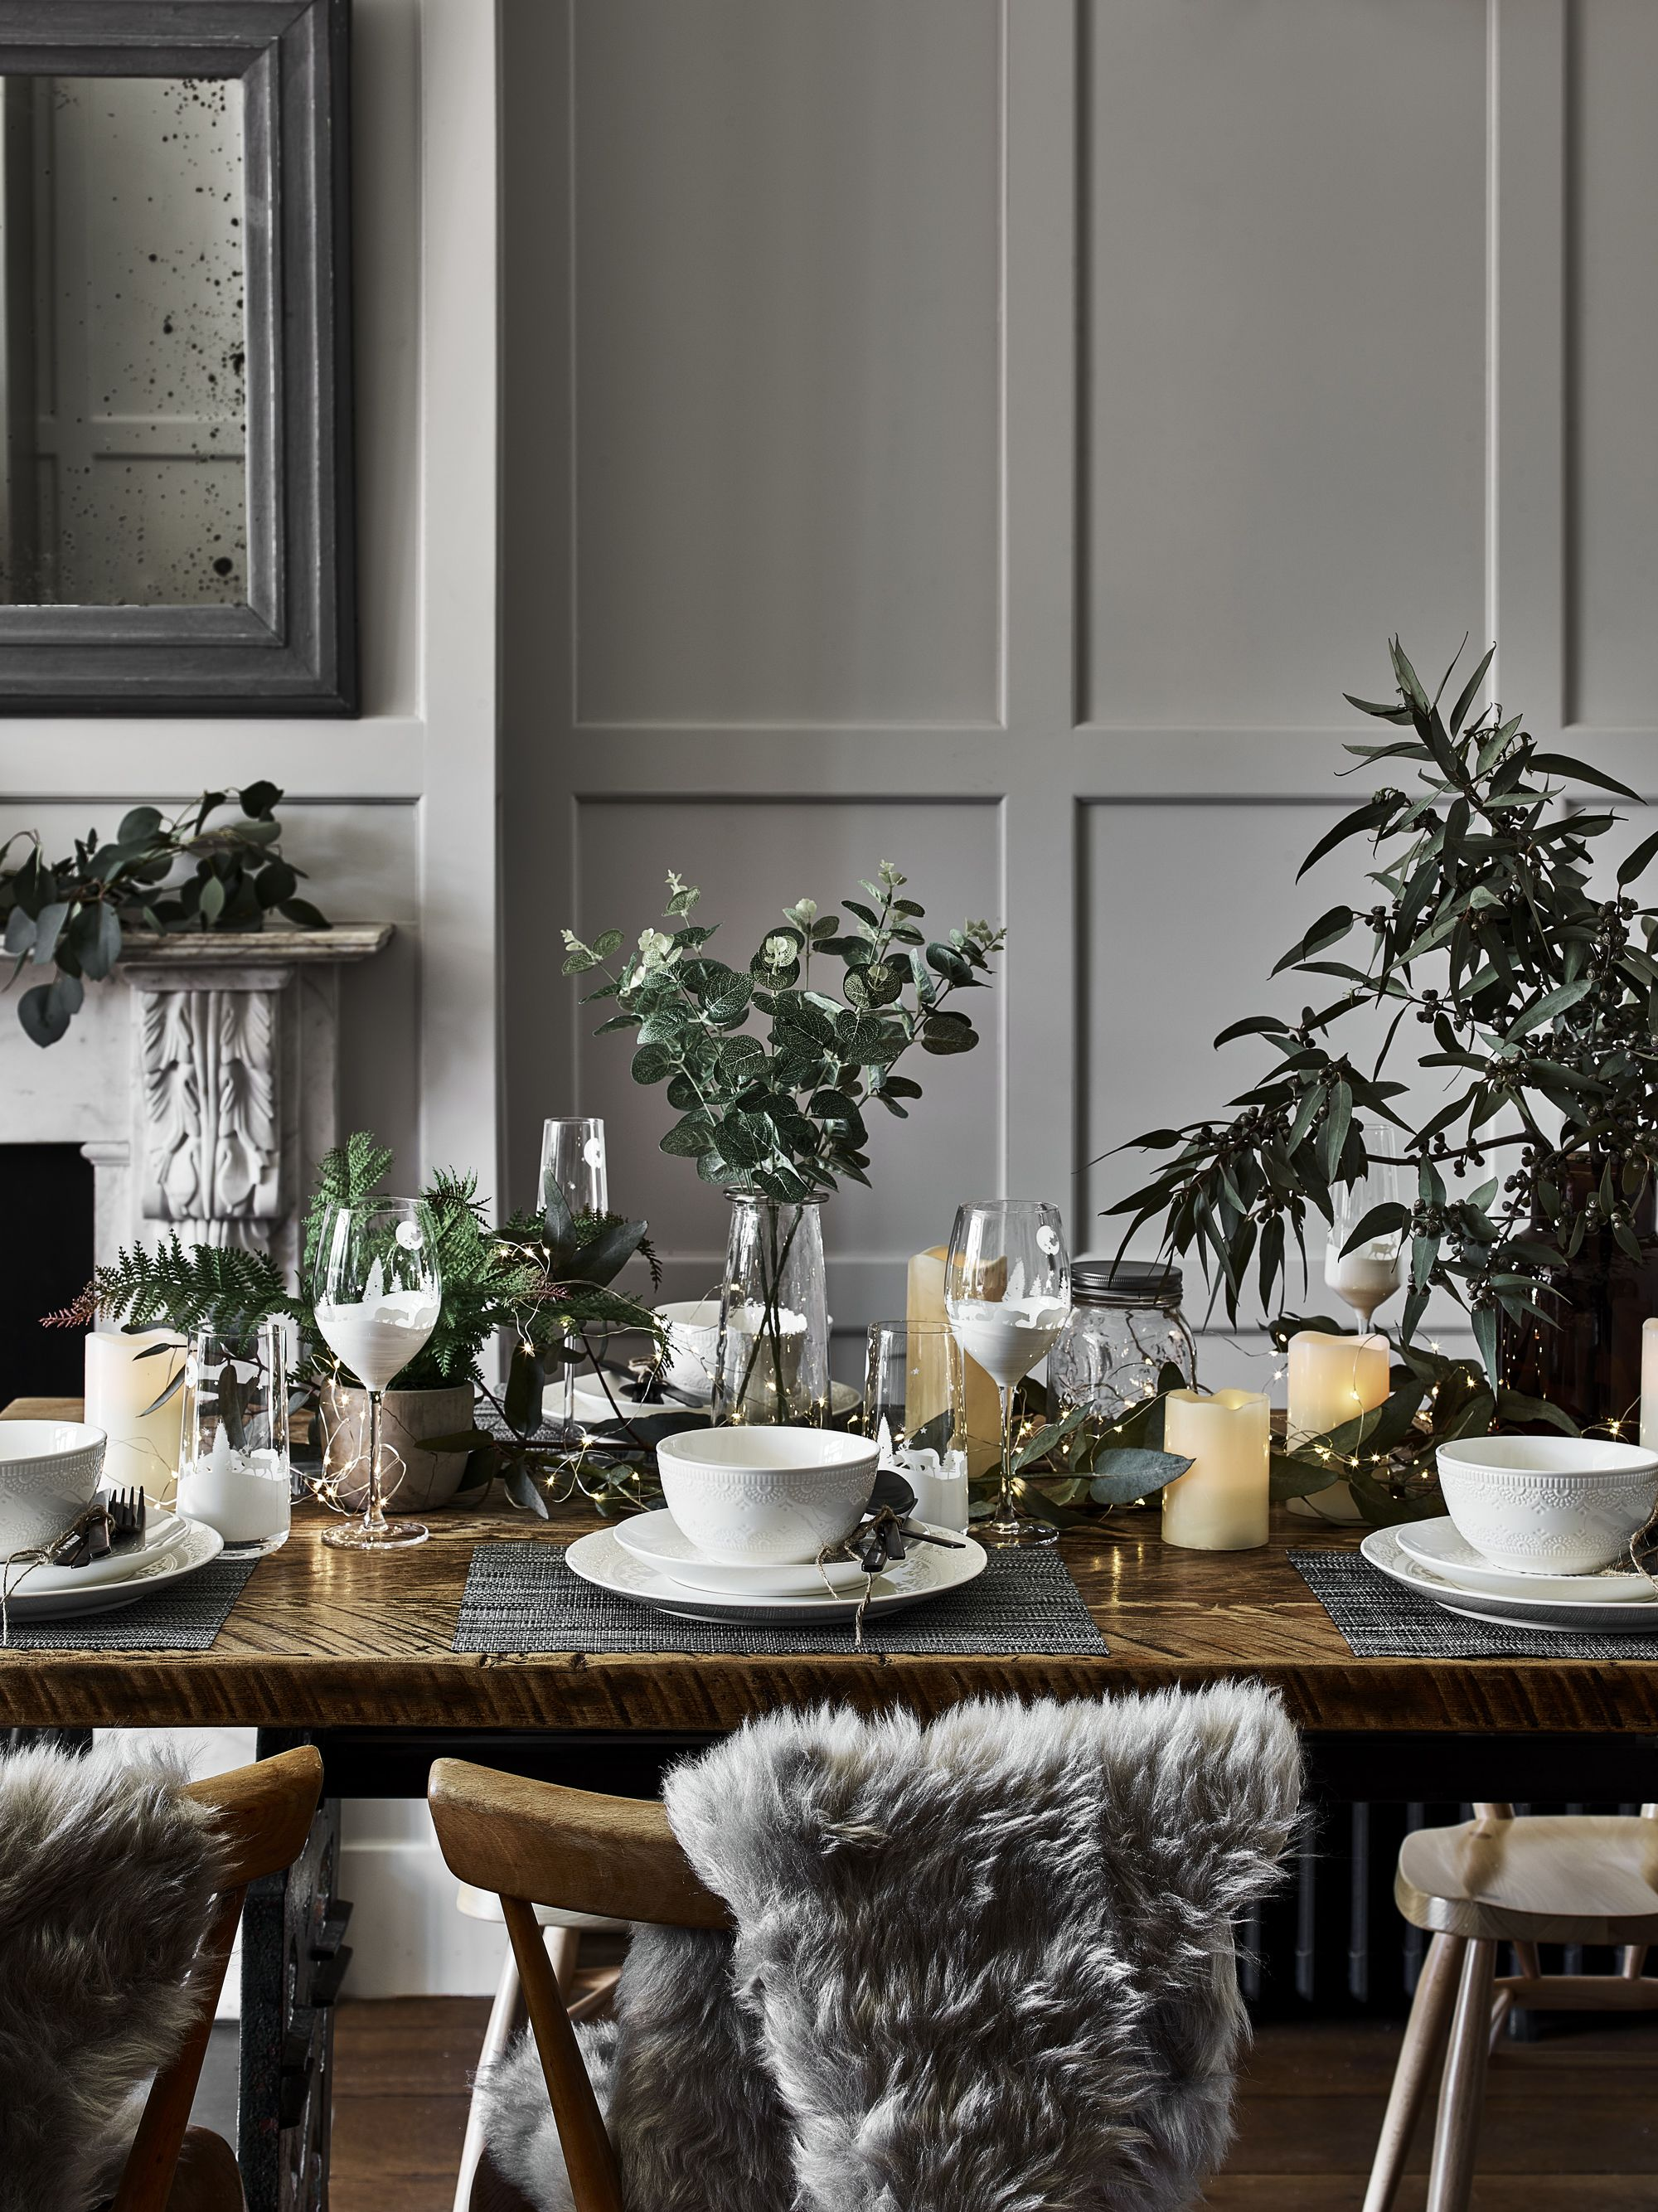 17 best Christmas table setting ideas images